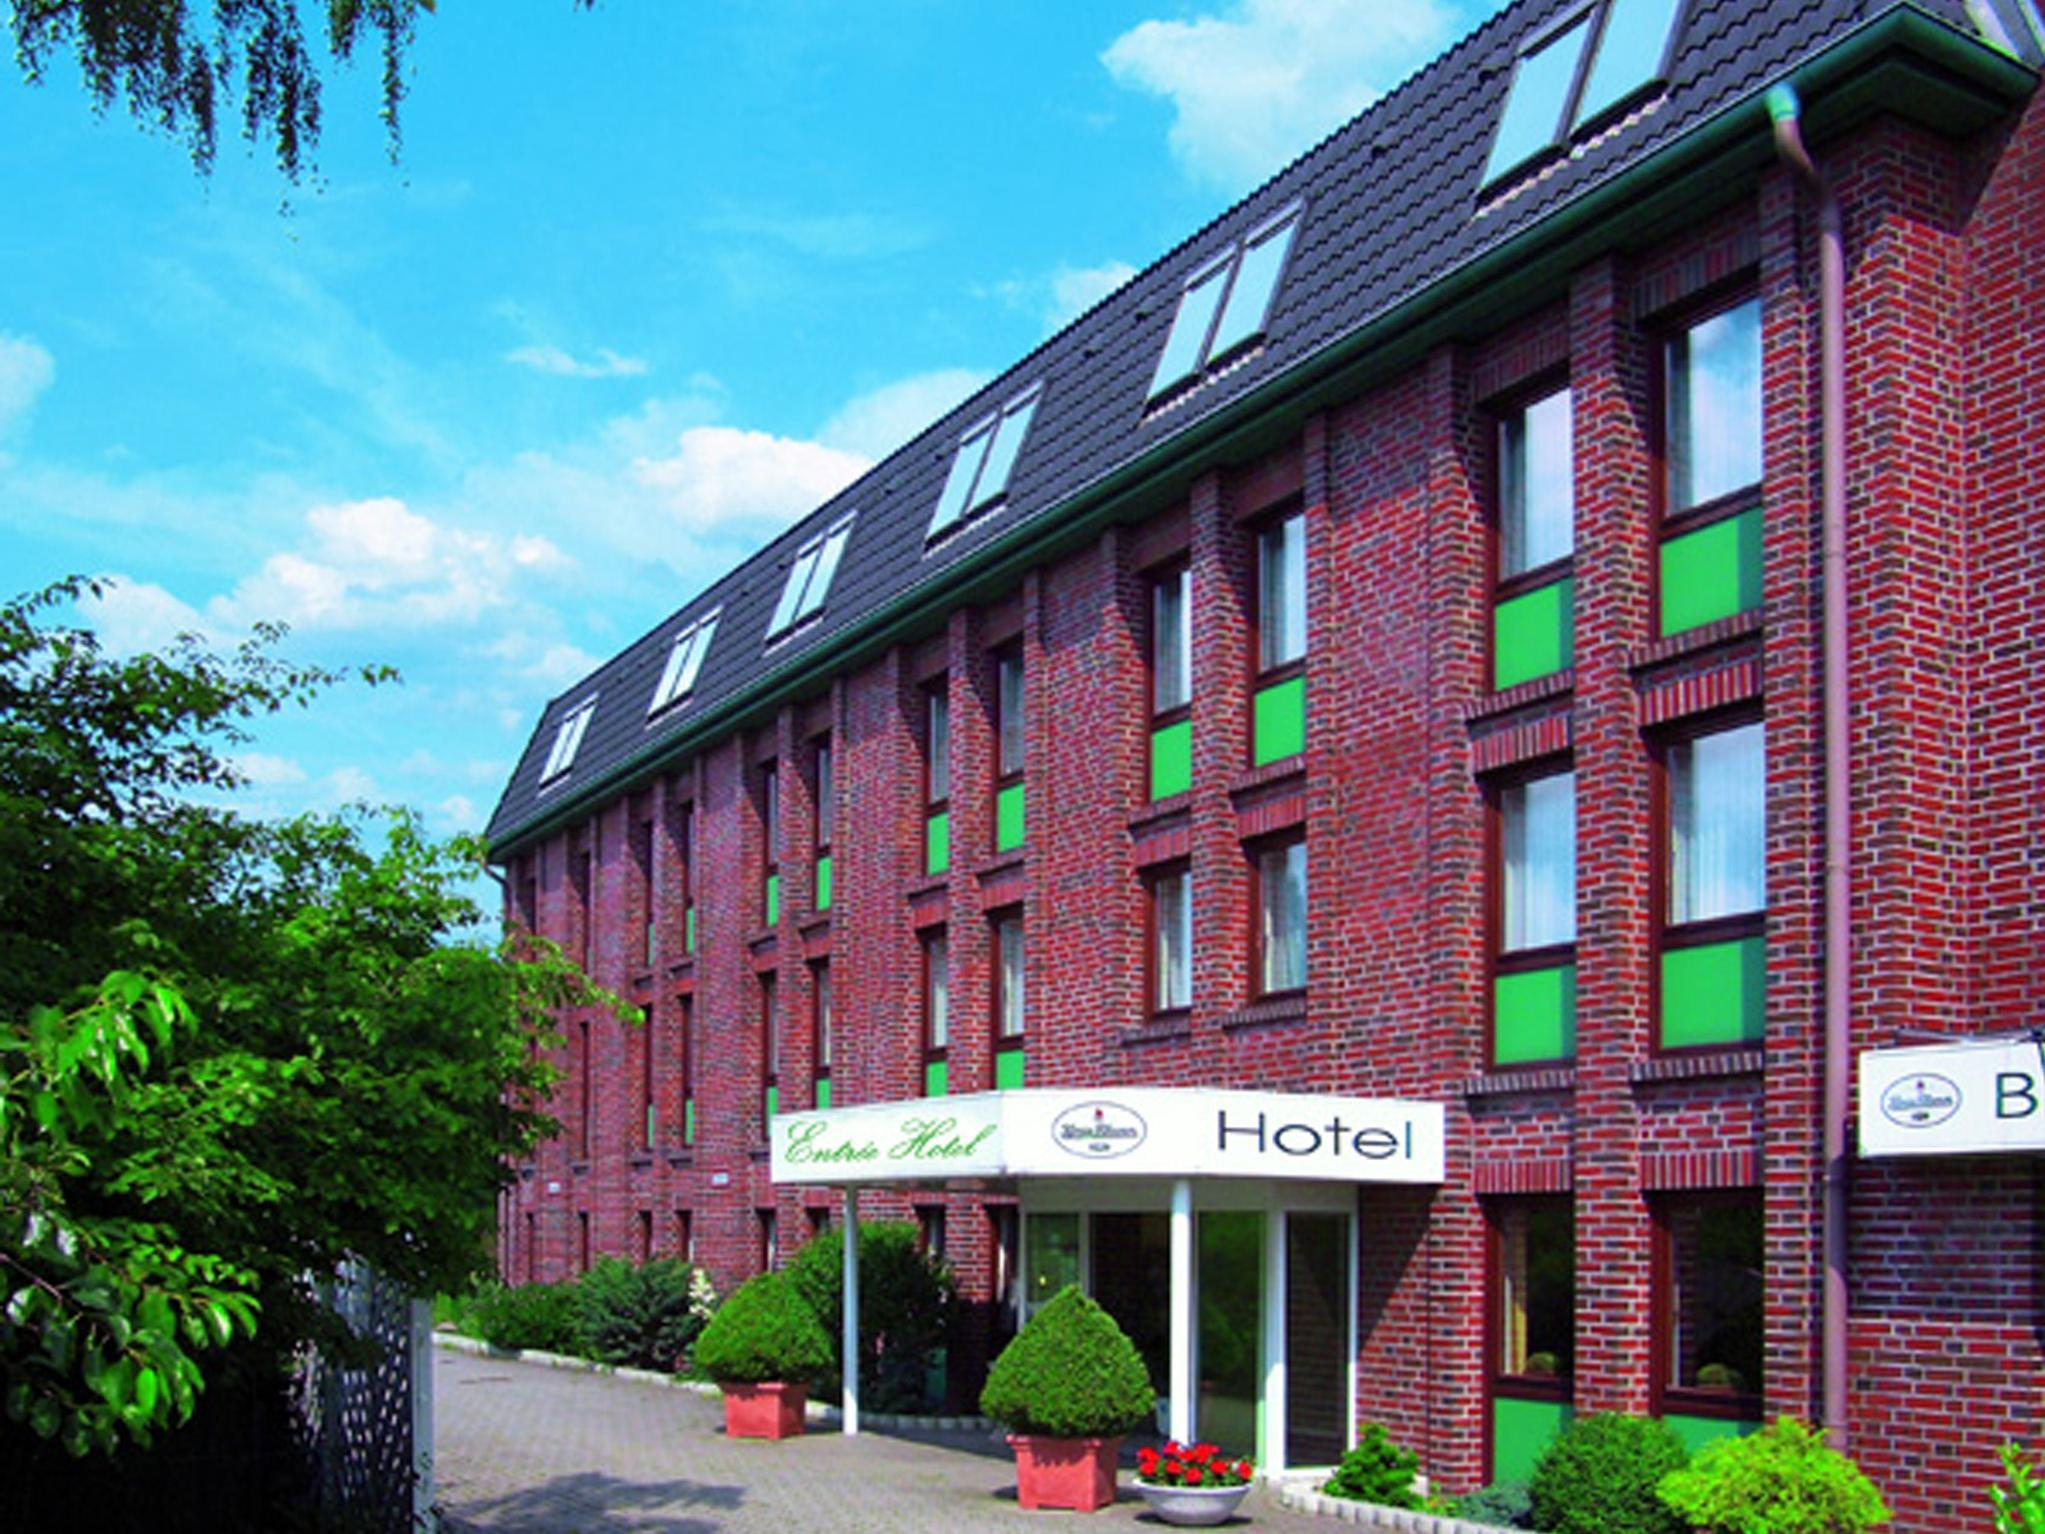 More About Entree Hotel Glinde